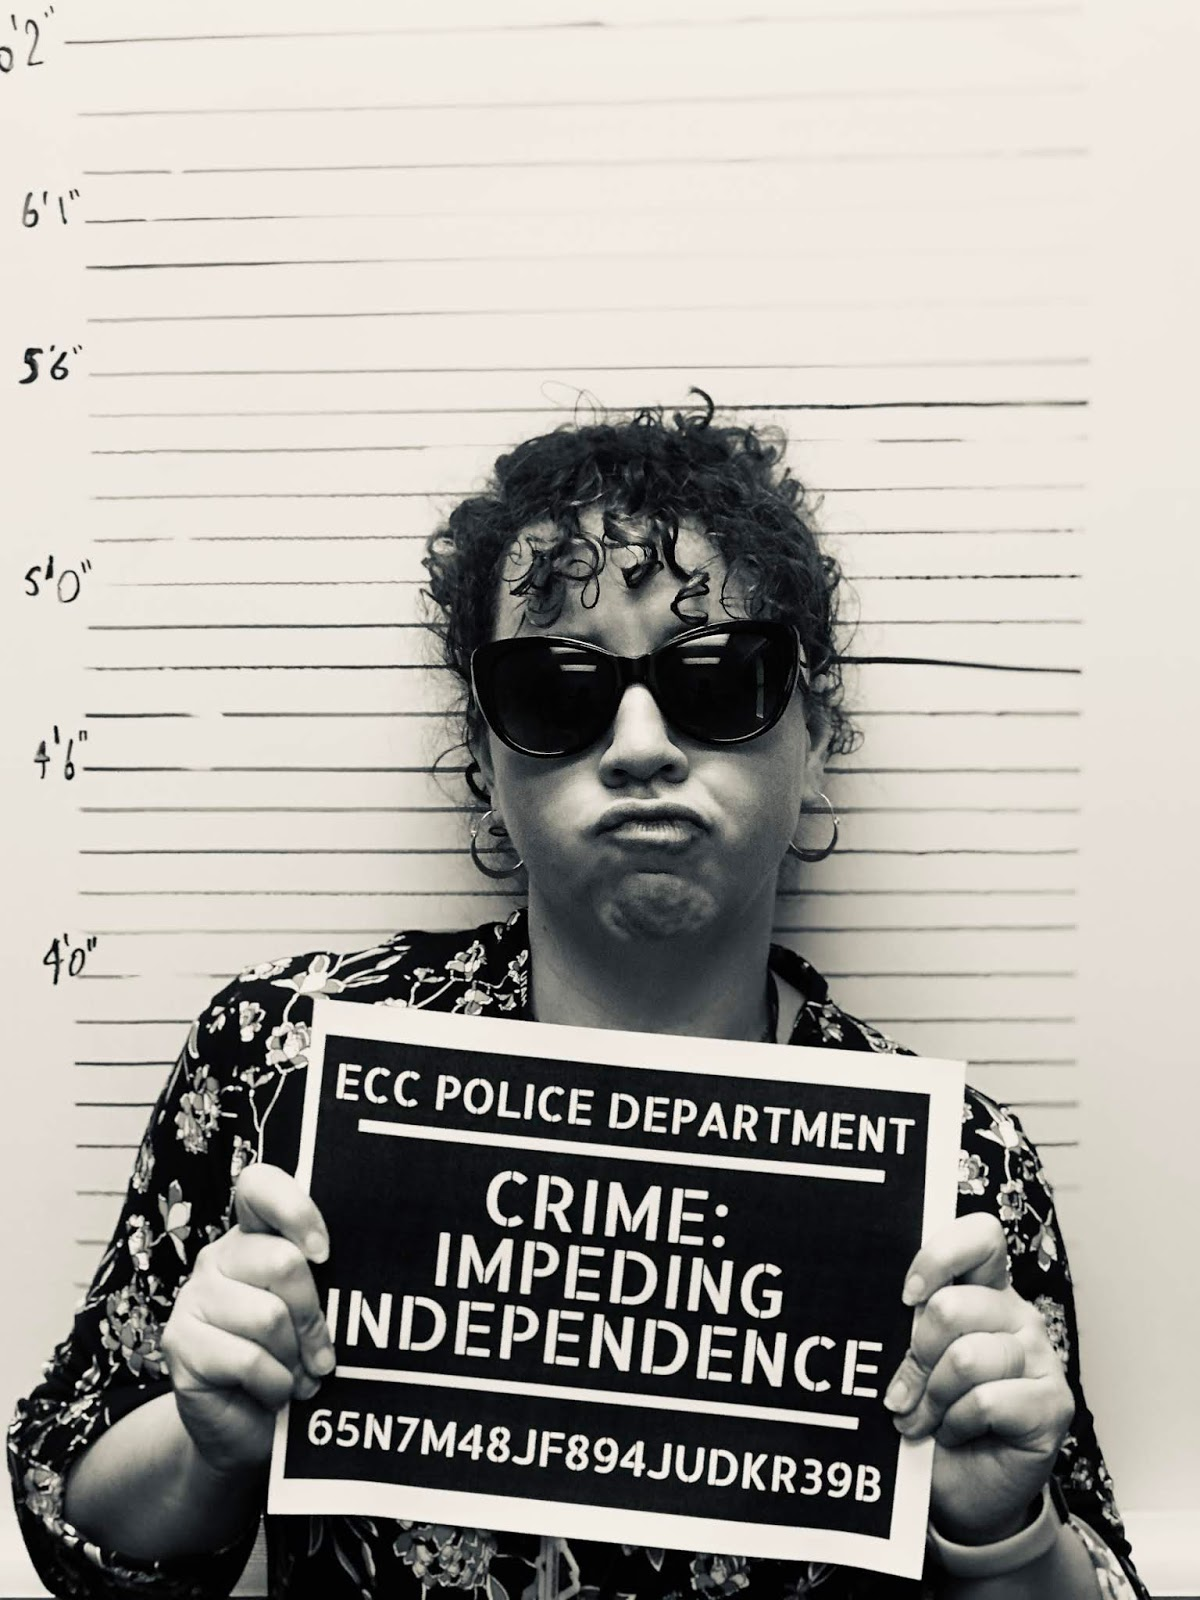 a mugshot of a female teacher wearing sunglasses with a tough expression